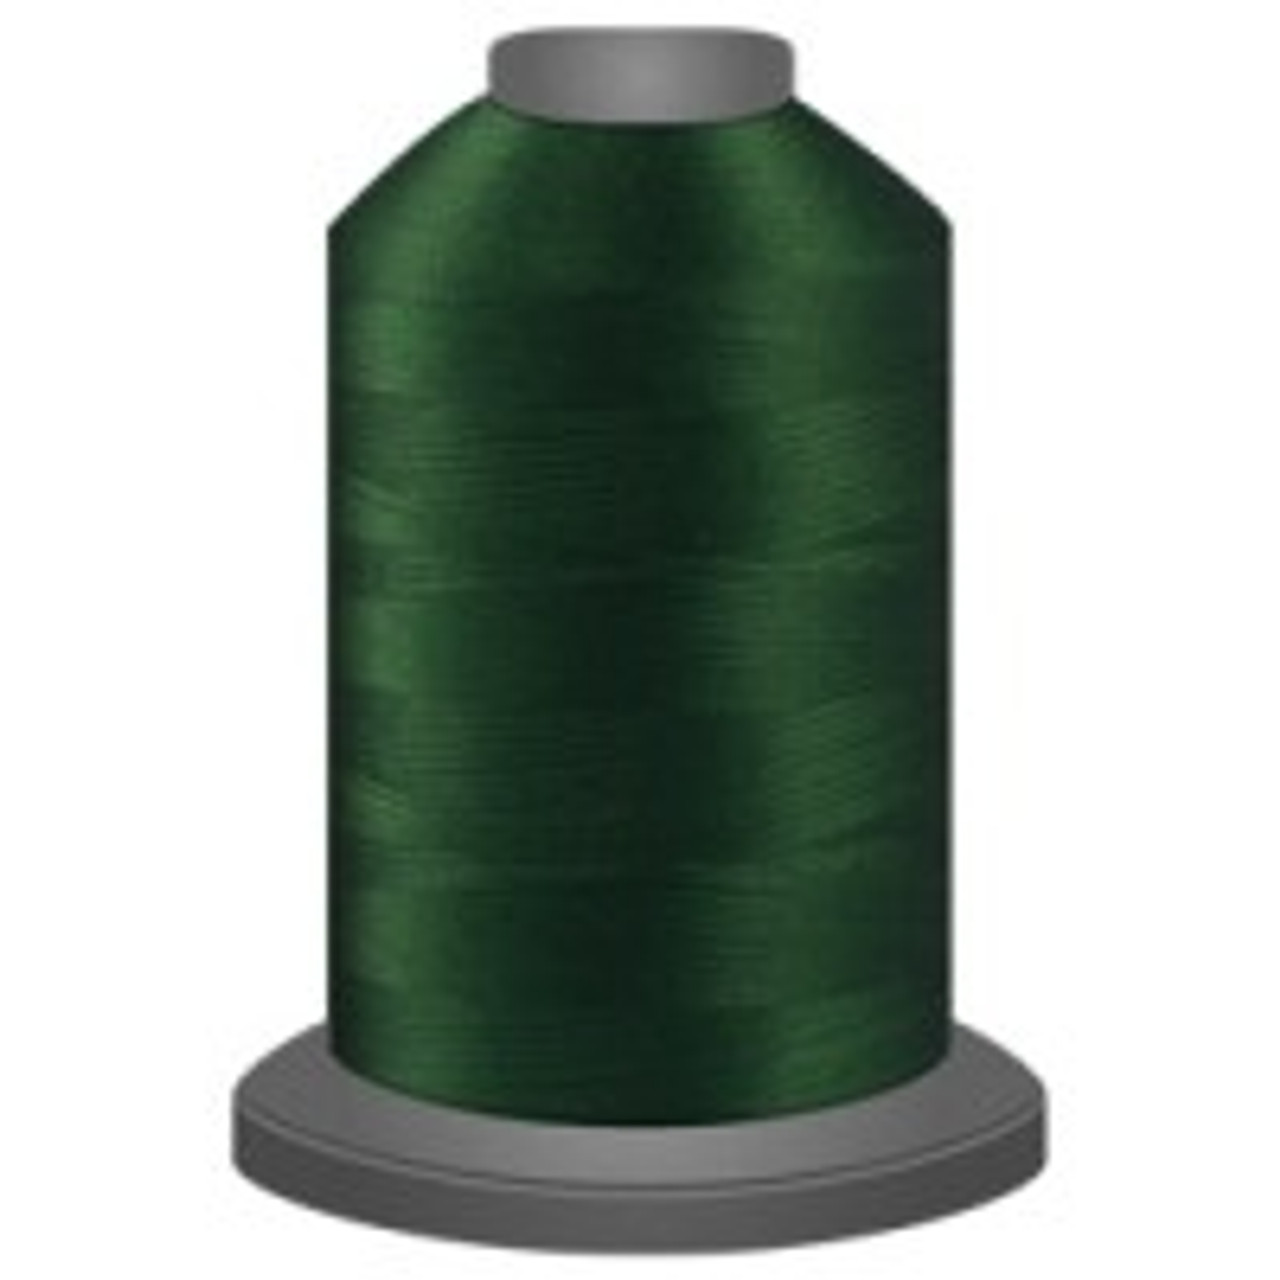 Jade - Polyester - Thread - Trilobal - Glide - 40 wt This thread is strong and maintains consistent tension.  This results in less thread breakage, consistent stitch formation, resulting in fewer machine stops.  Made from colorfast polyester. Complete and uniform fill, provides a beautiful look, as if the thread melts into the fabric. Glide runs virtually lint free through your machine's tensioners and needle. Mini Spool - 40 wt - 1100 yds King Spool - 40 wt - 5500 yds Available in 269 colors.